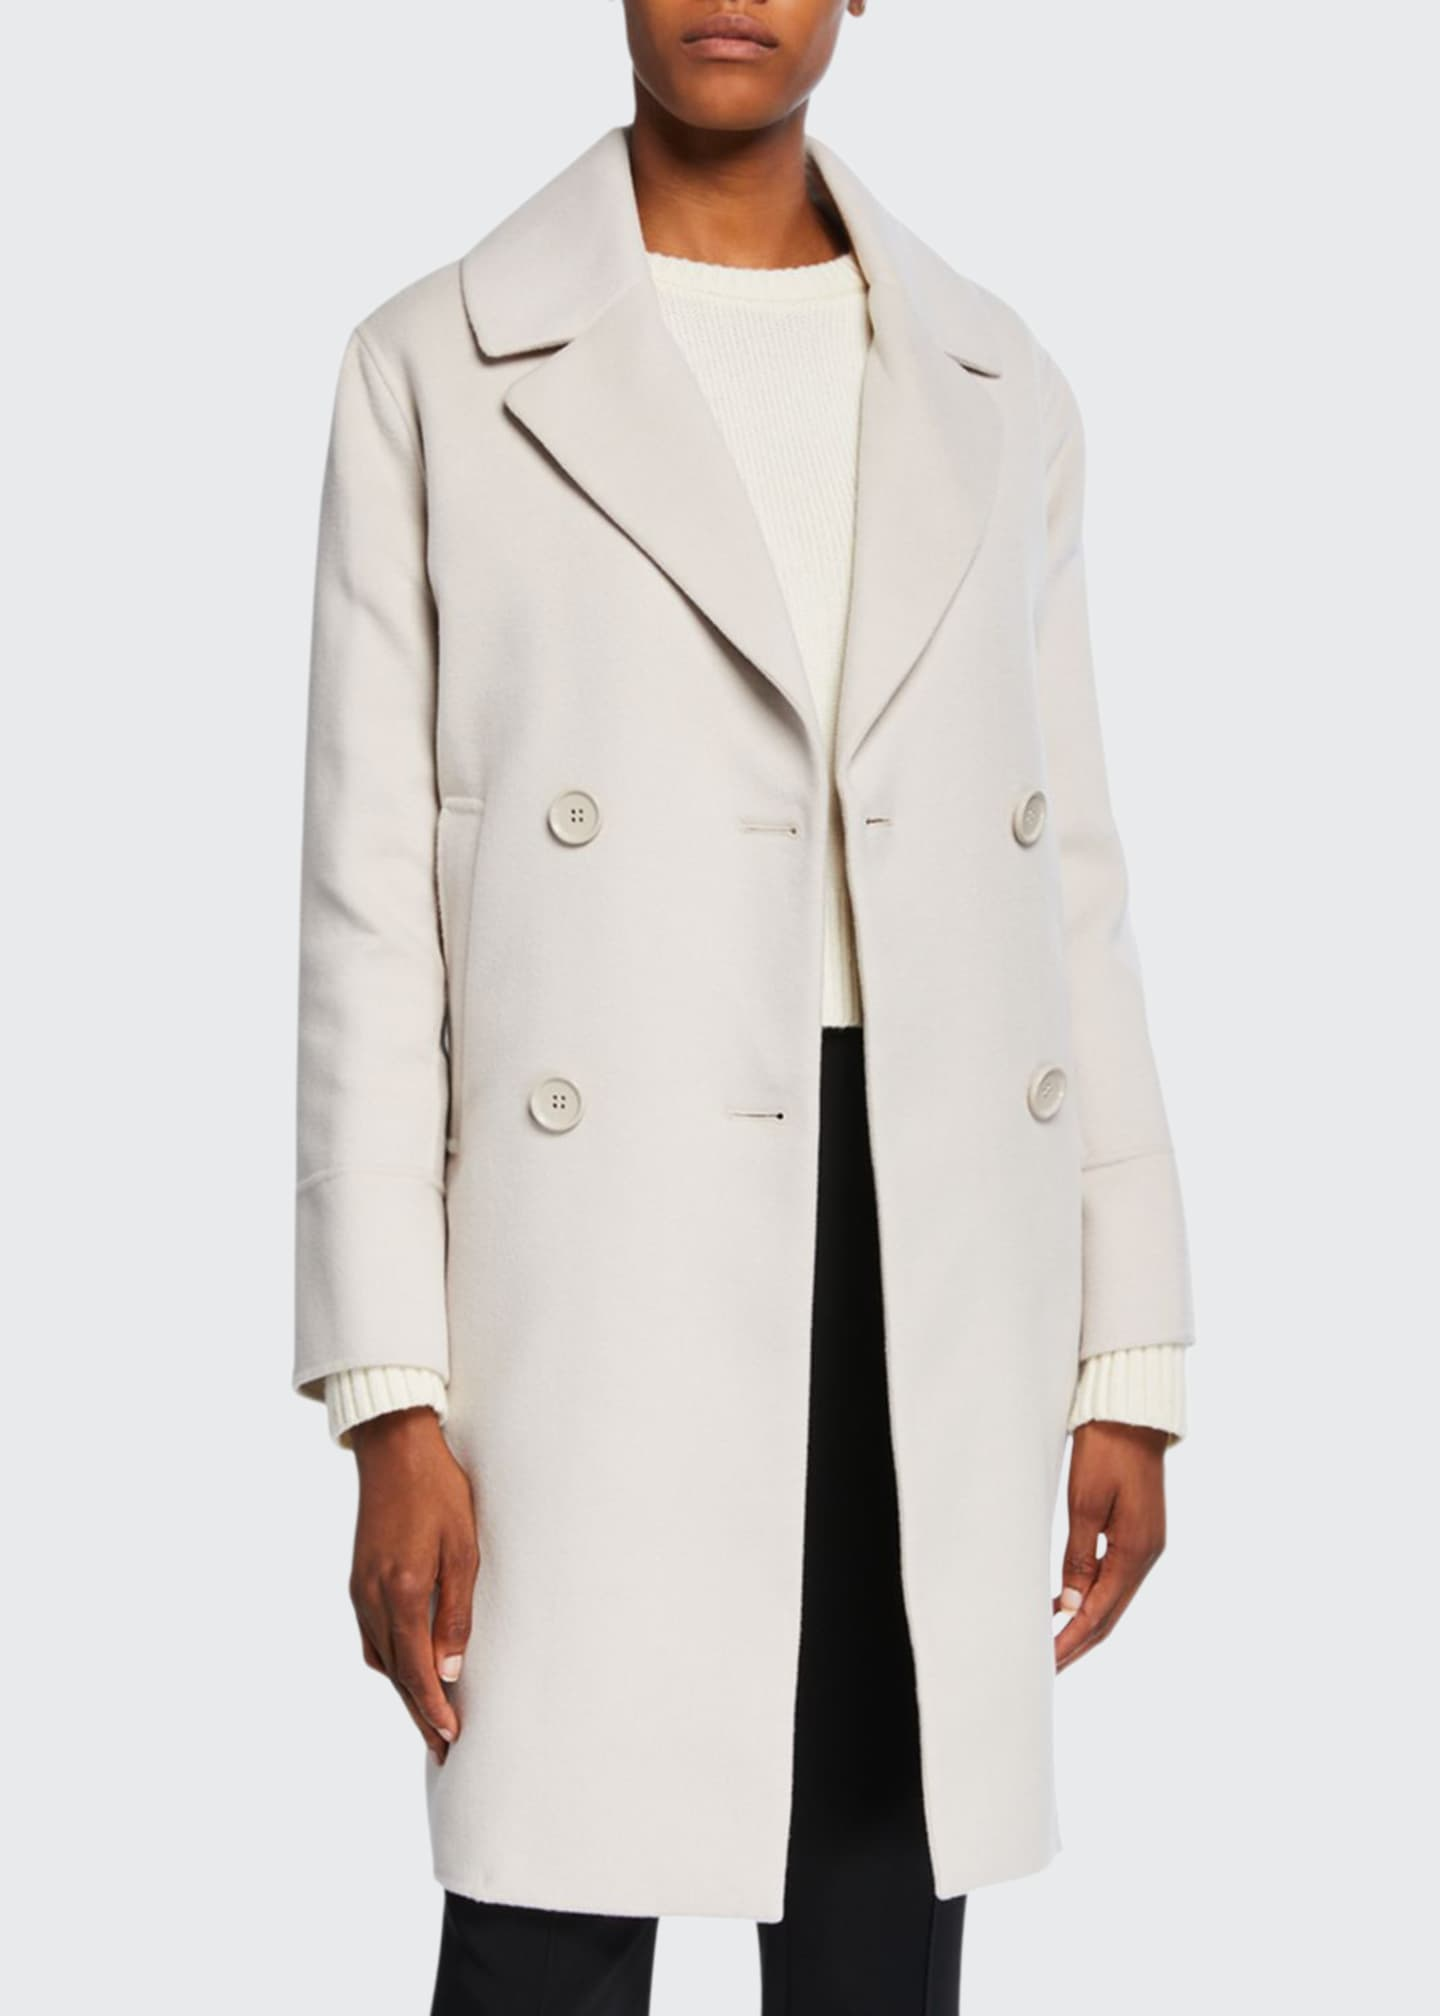 Max Mara The Cube Cabanl Double-Breasted Wool-Blend Coat,